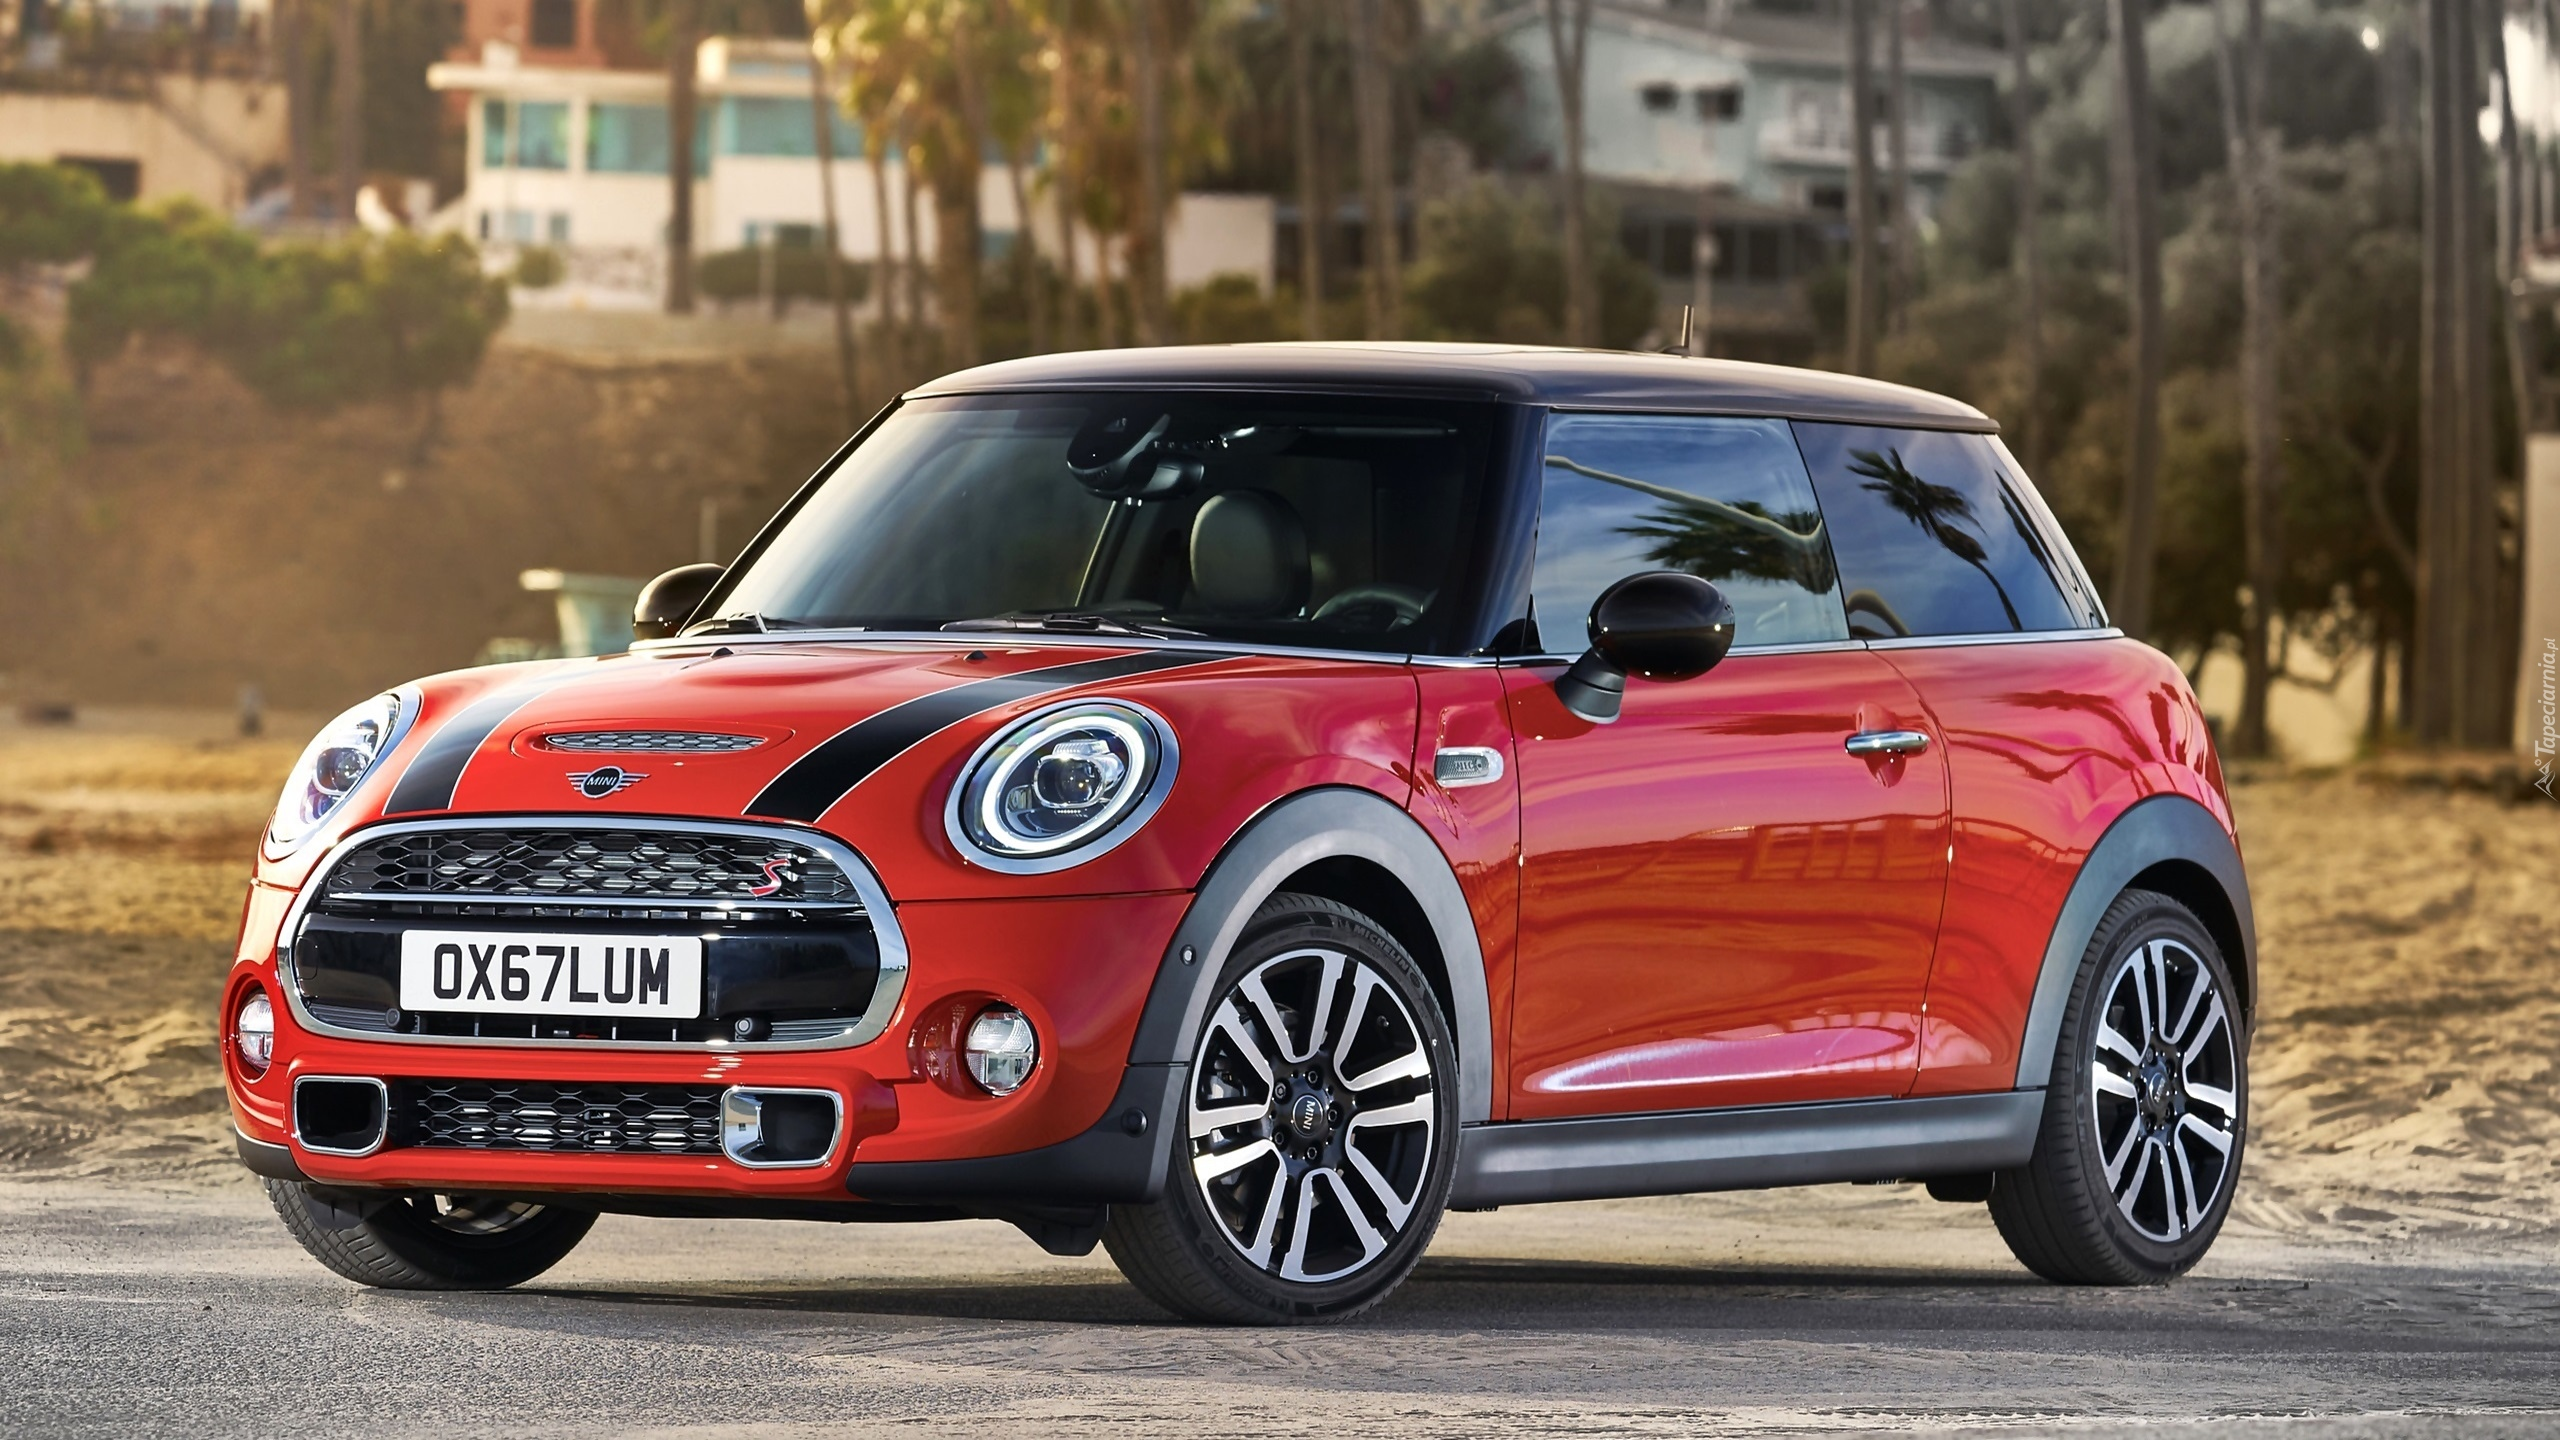 mini cooper s hardtop 2door 2018. Black Bedroom Furniture Sets. Home Design Ideas